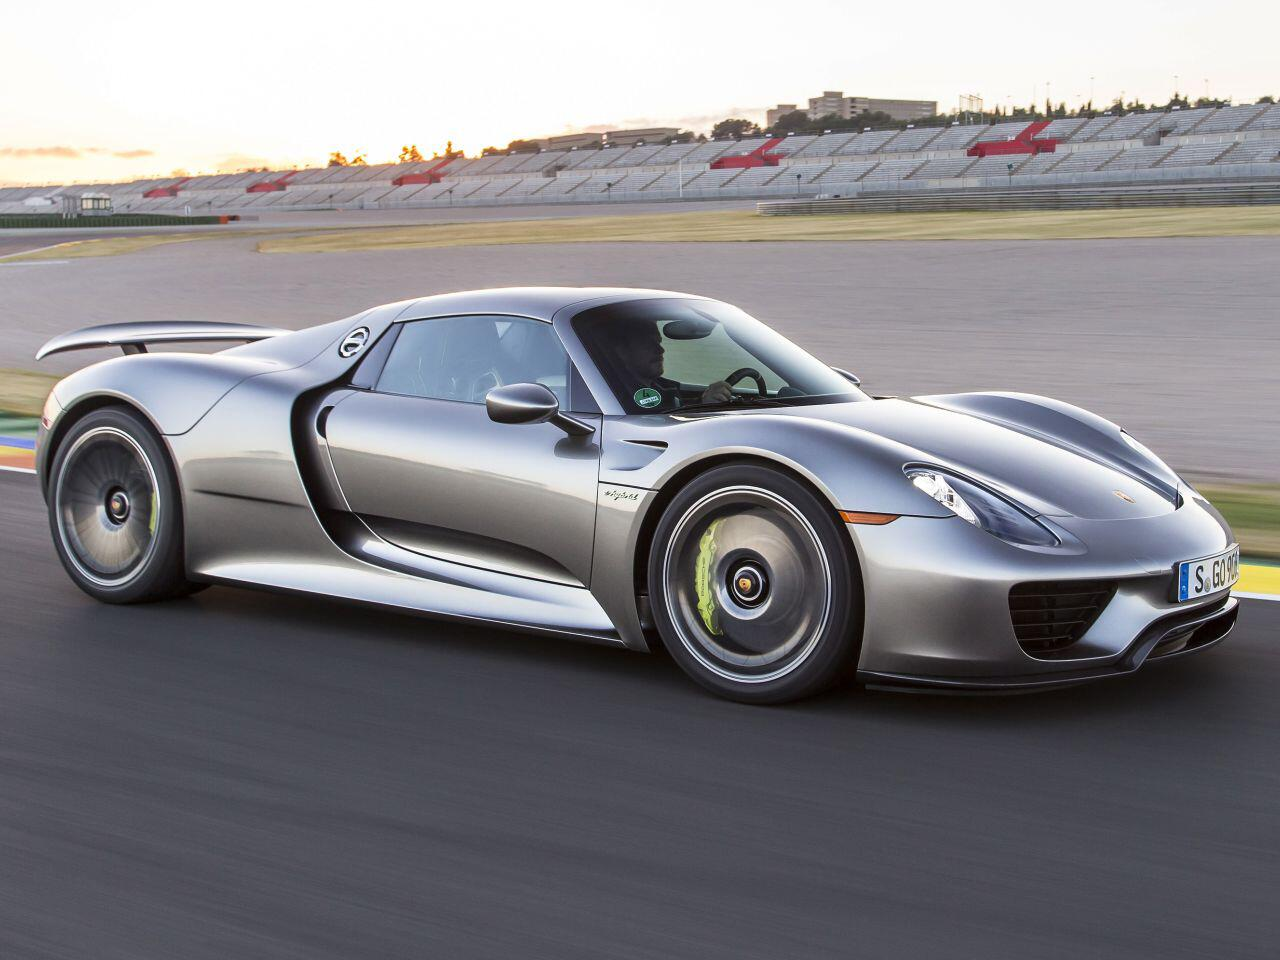 porsche 918 spyder wallpaper for pc - Porsche 918 Spyder Wallpaper